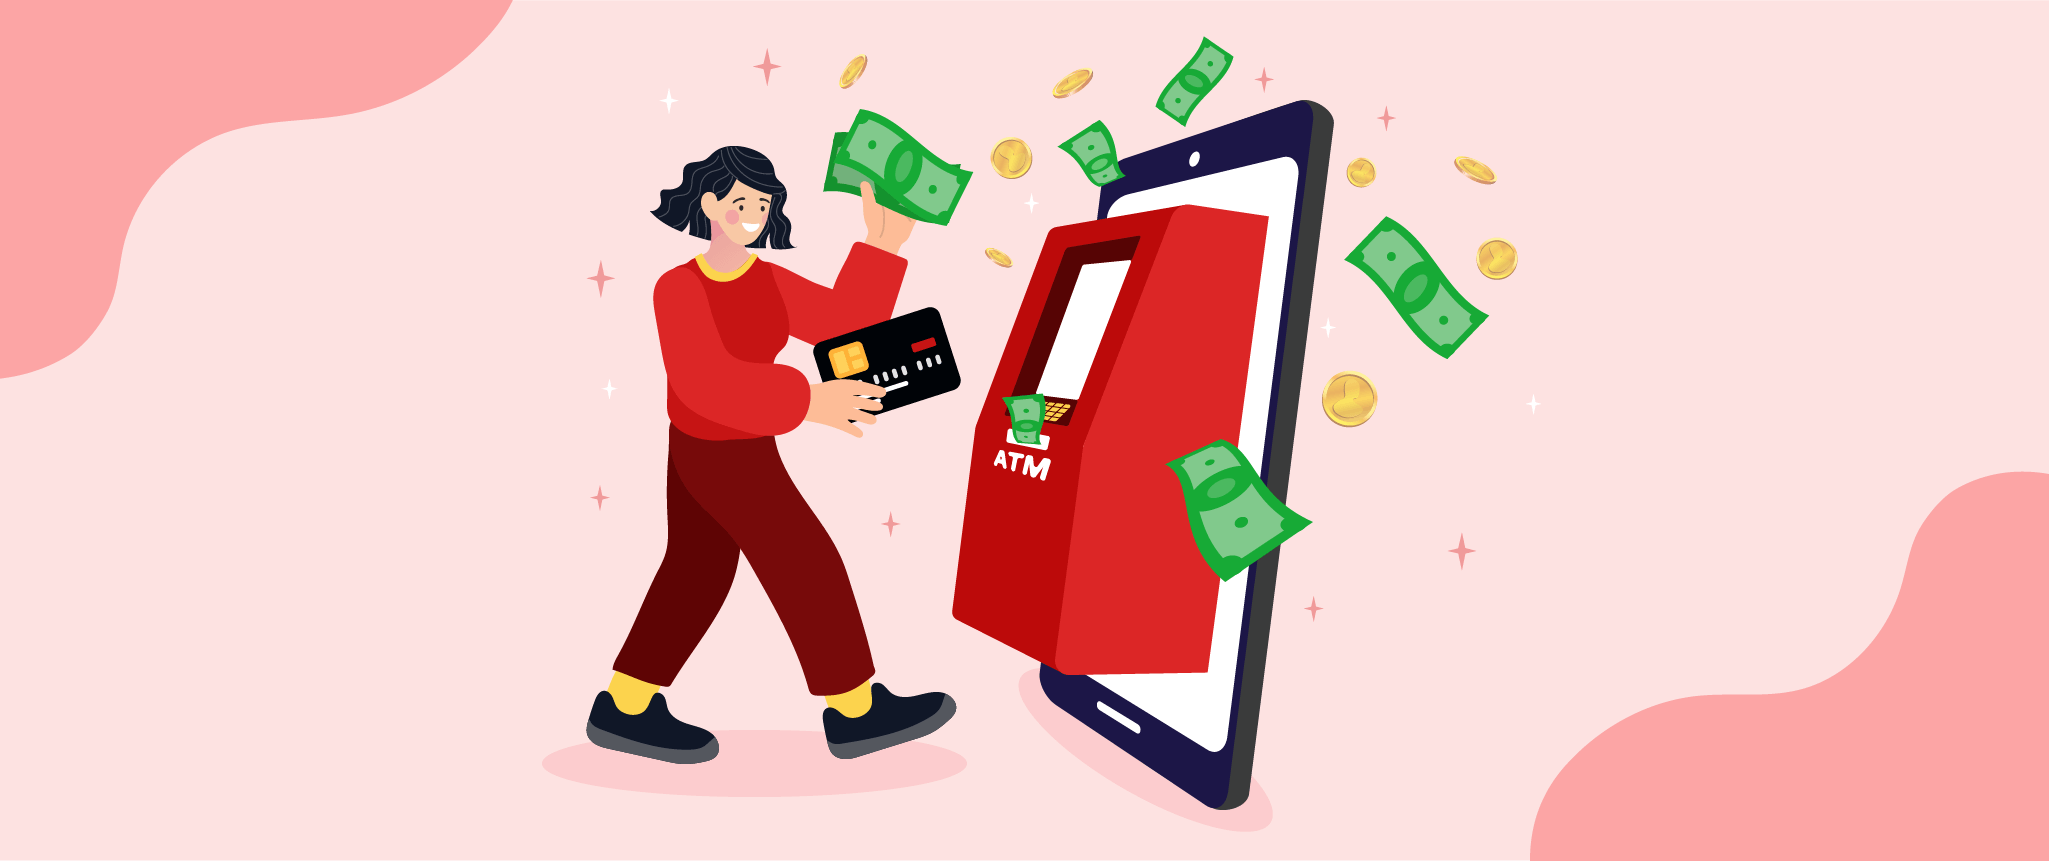 App Monetization: Lessons from Top Brands